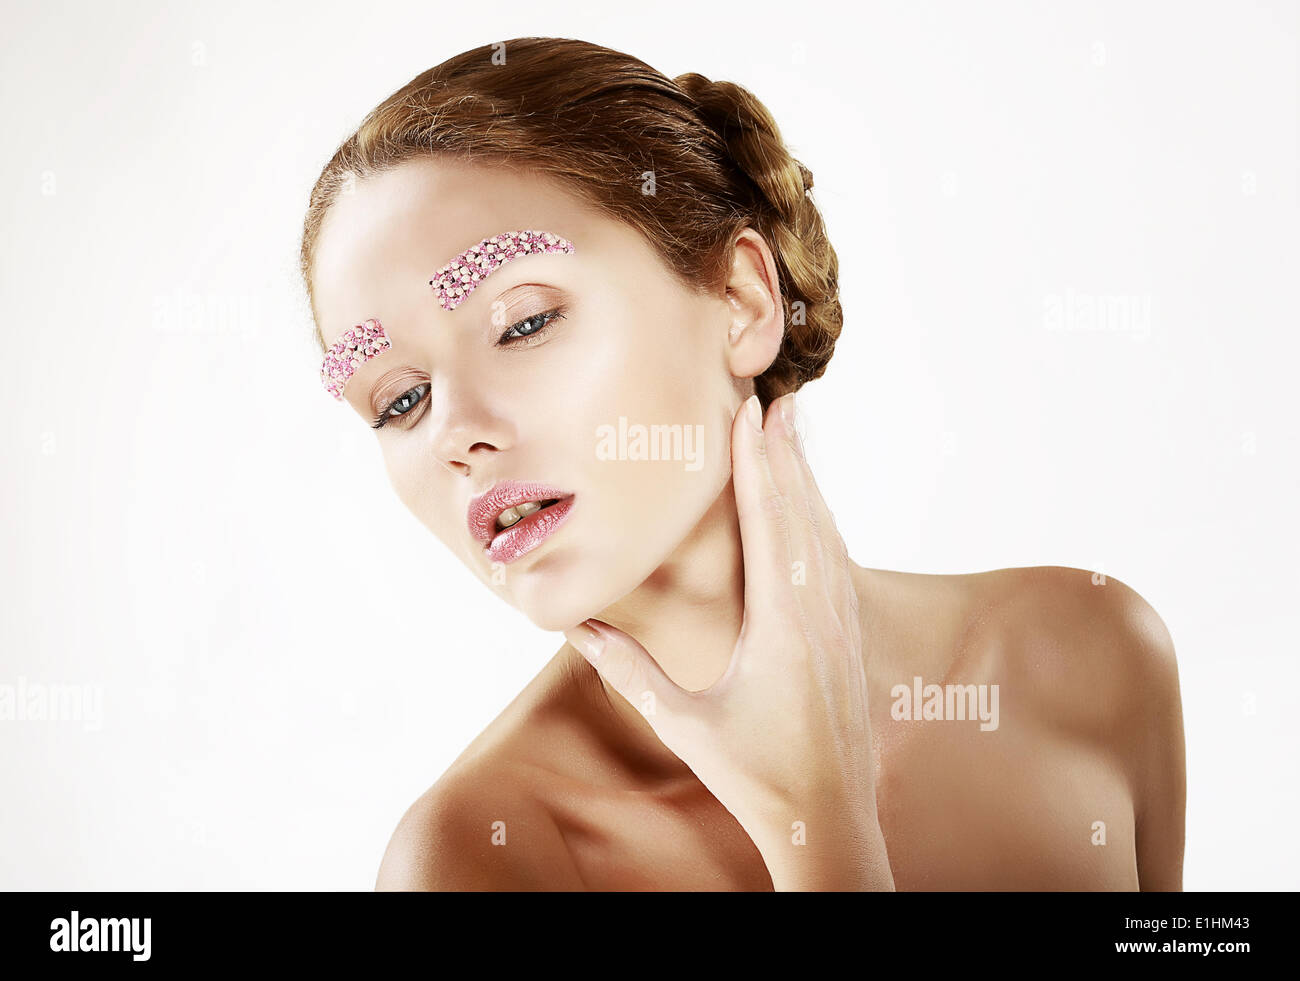 Faceart. Portrait of Young Beauty with Bright Eyebrows - Stock Image